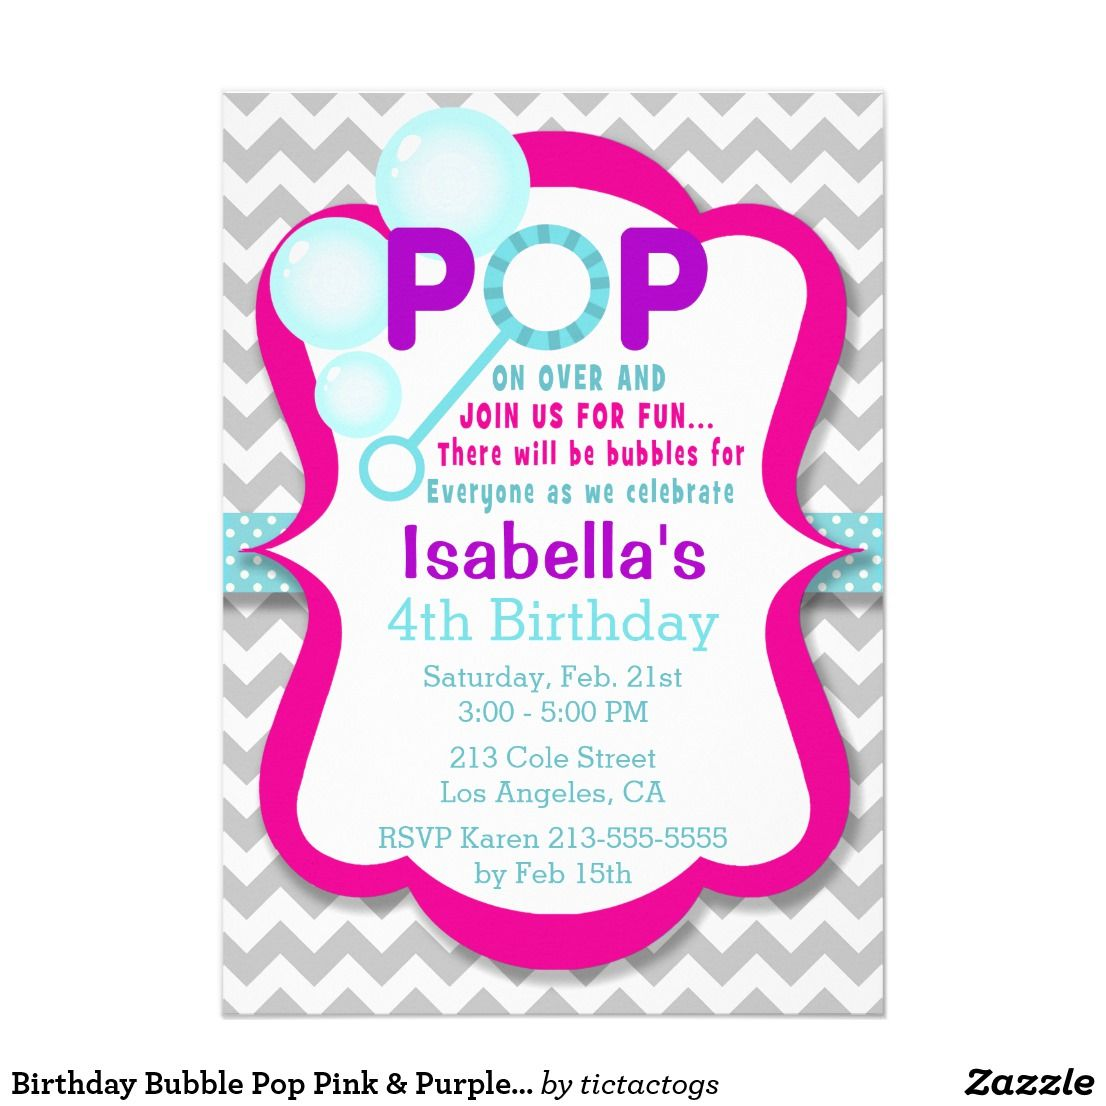 Birthday Bubble Pop Pink & Purple Party Invitation | Girls Birthday ...